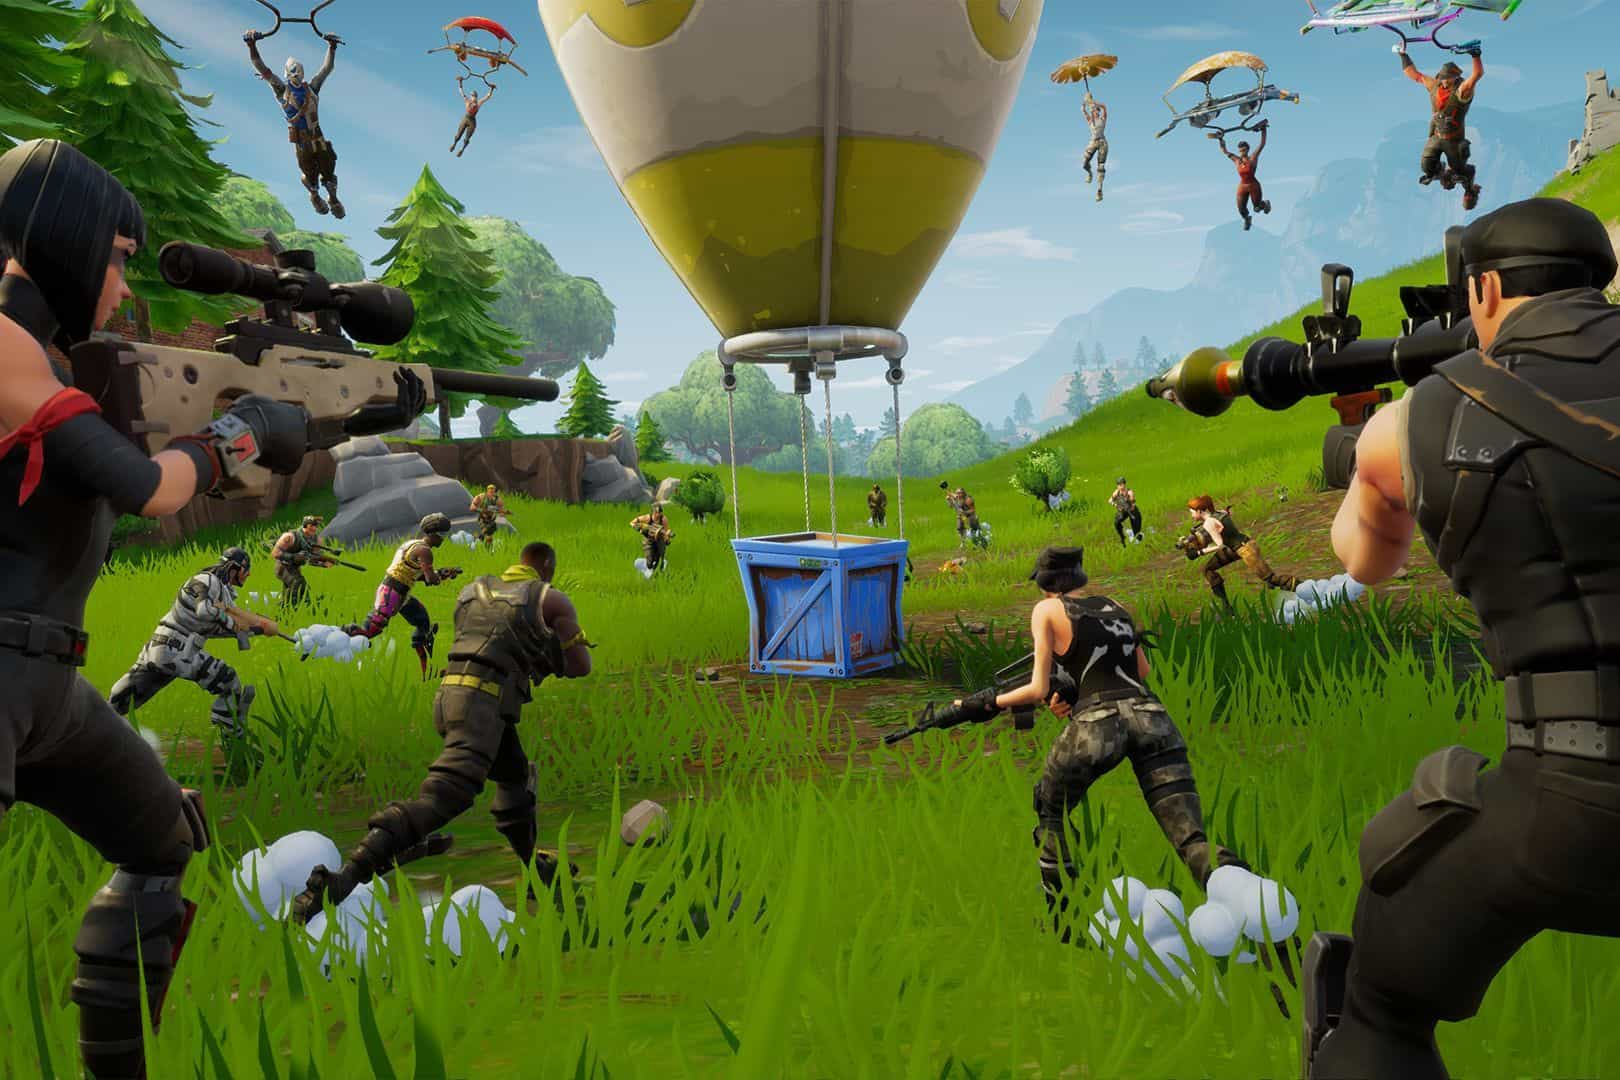 Príncipe Harry pretende banir o jogo Fortnite do Reino Unido